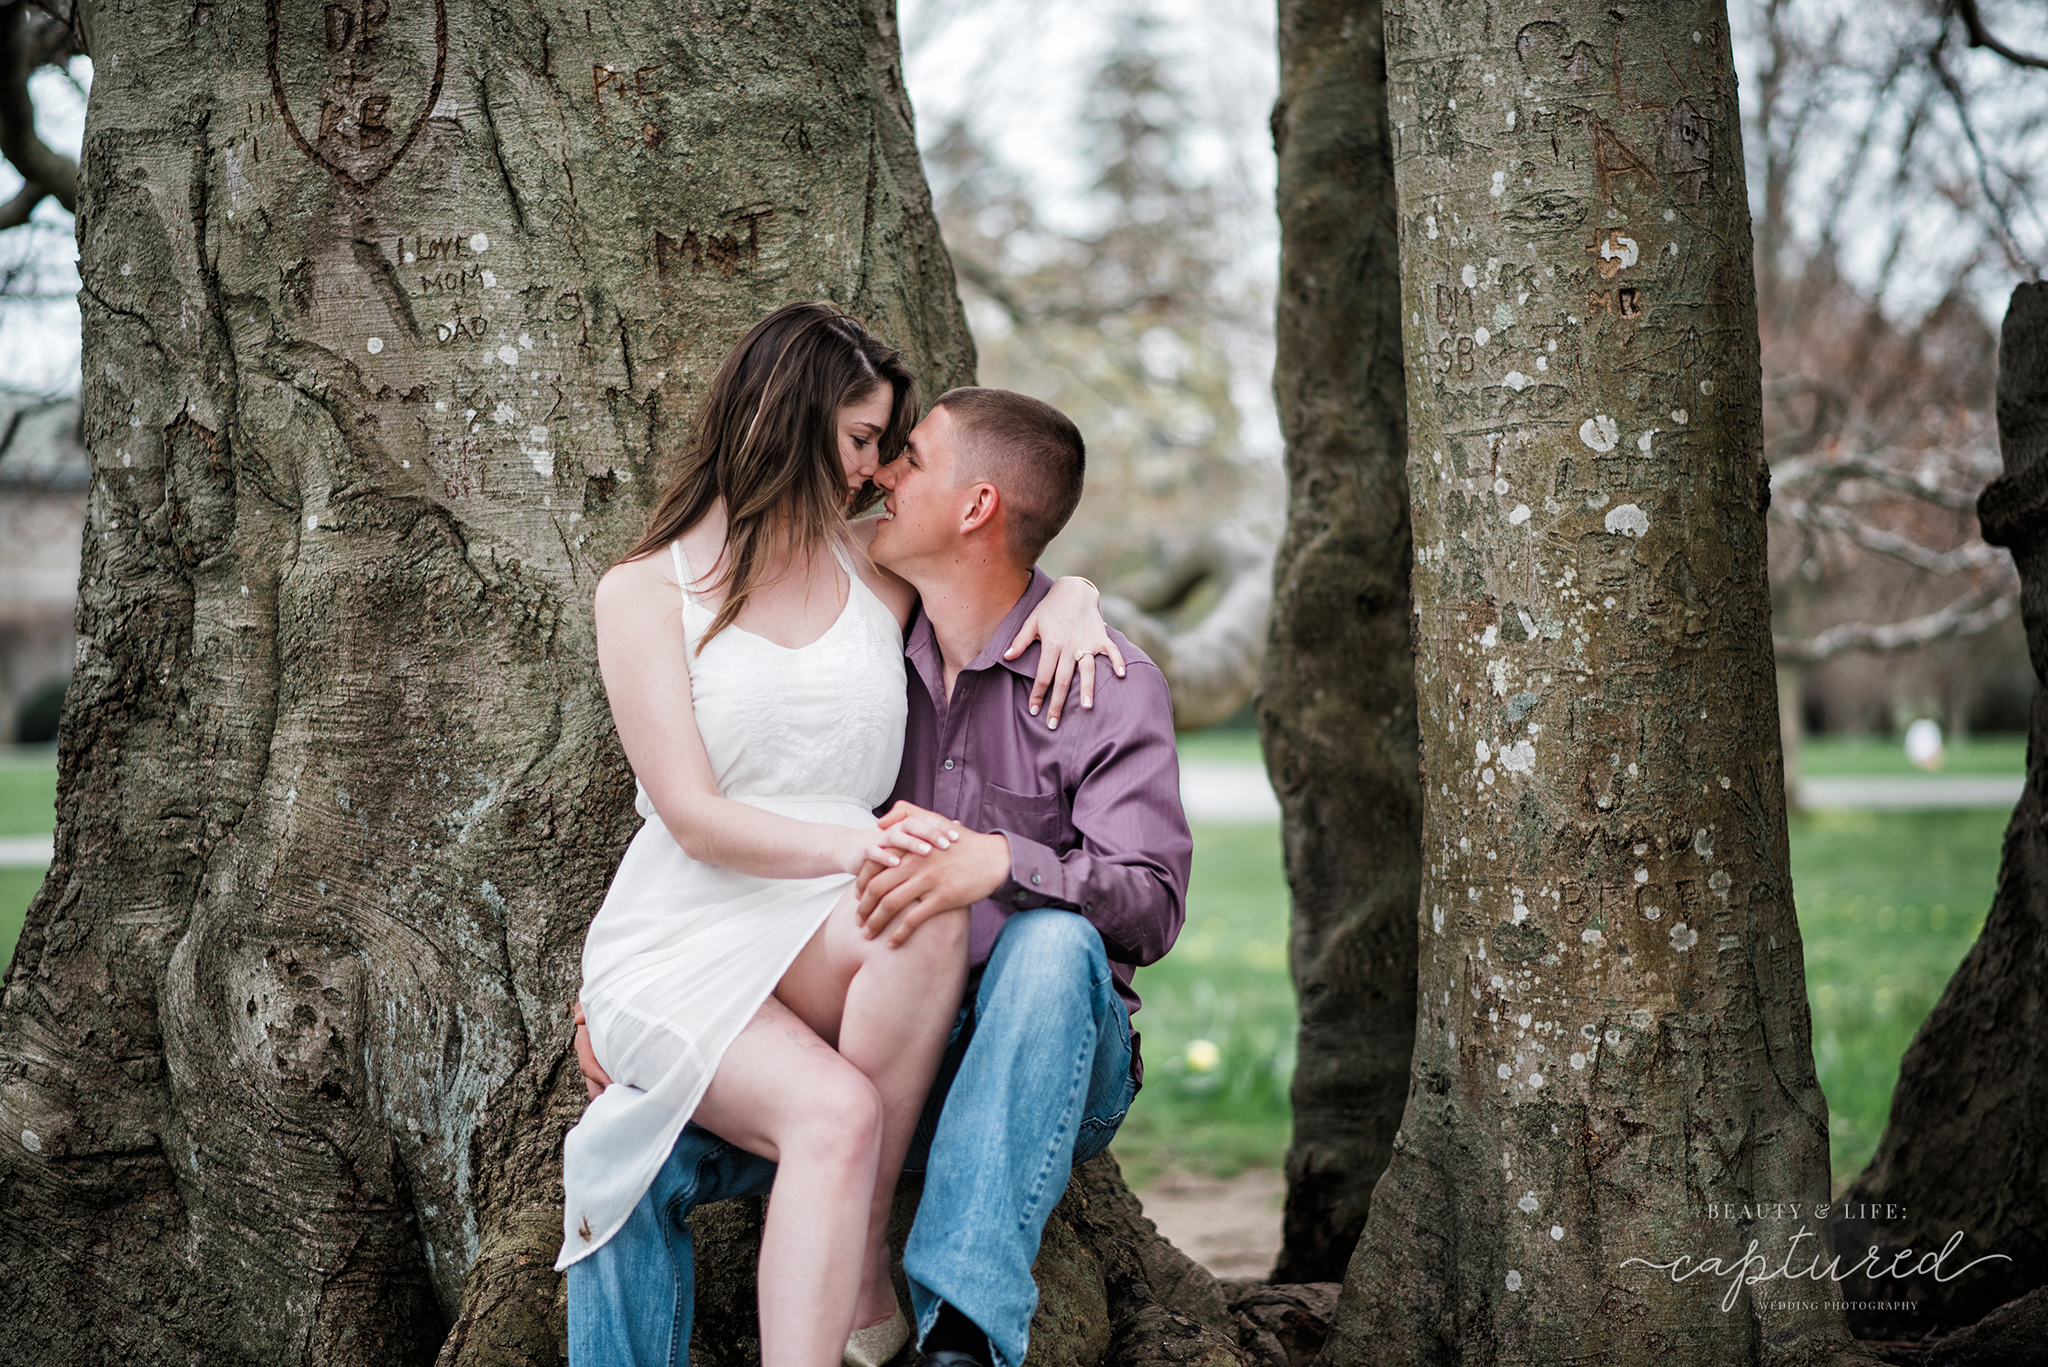 Beautyandlifecaptured_Christina_Engagement-18.jpg